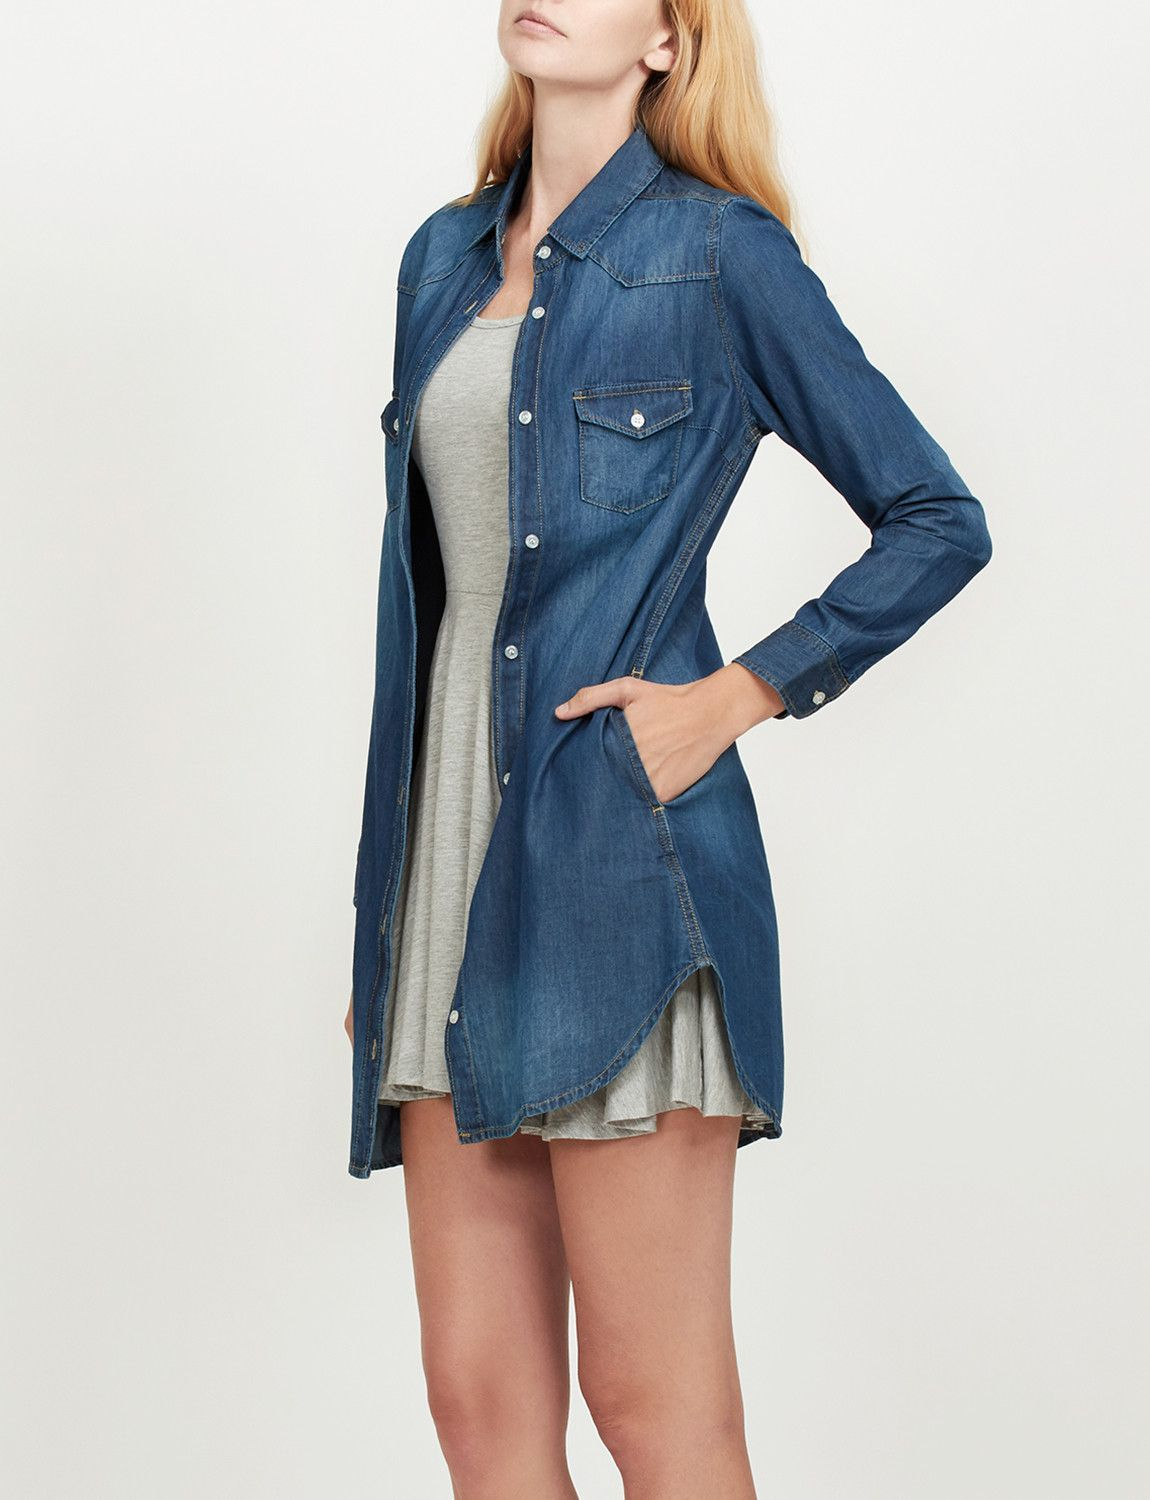 Like An Oversized Shirt This Classic Loose Fit Chambray Jean Denim